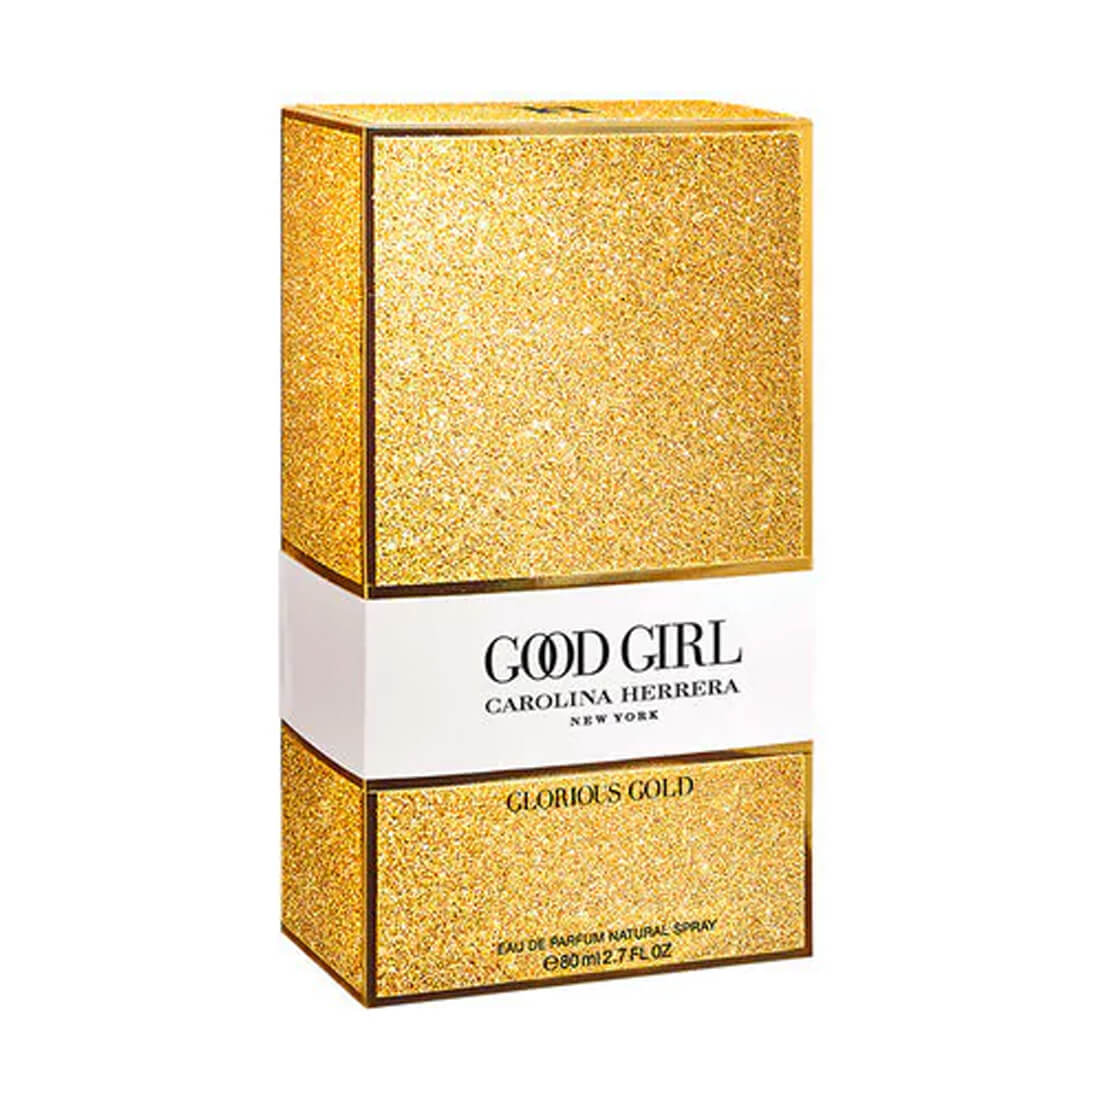 Carolina Herrera Good Girl Glorious Gold Collector Edition Eau De Perfume 80ml